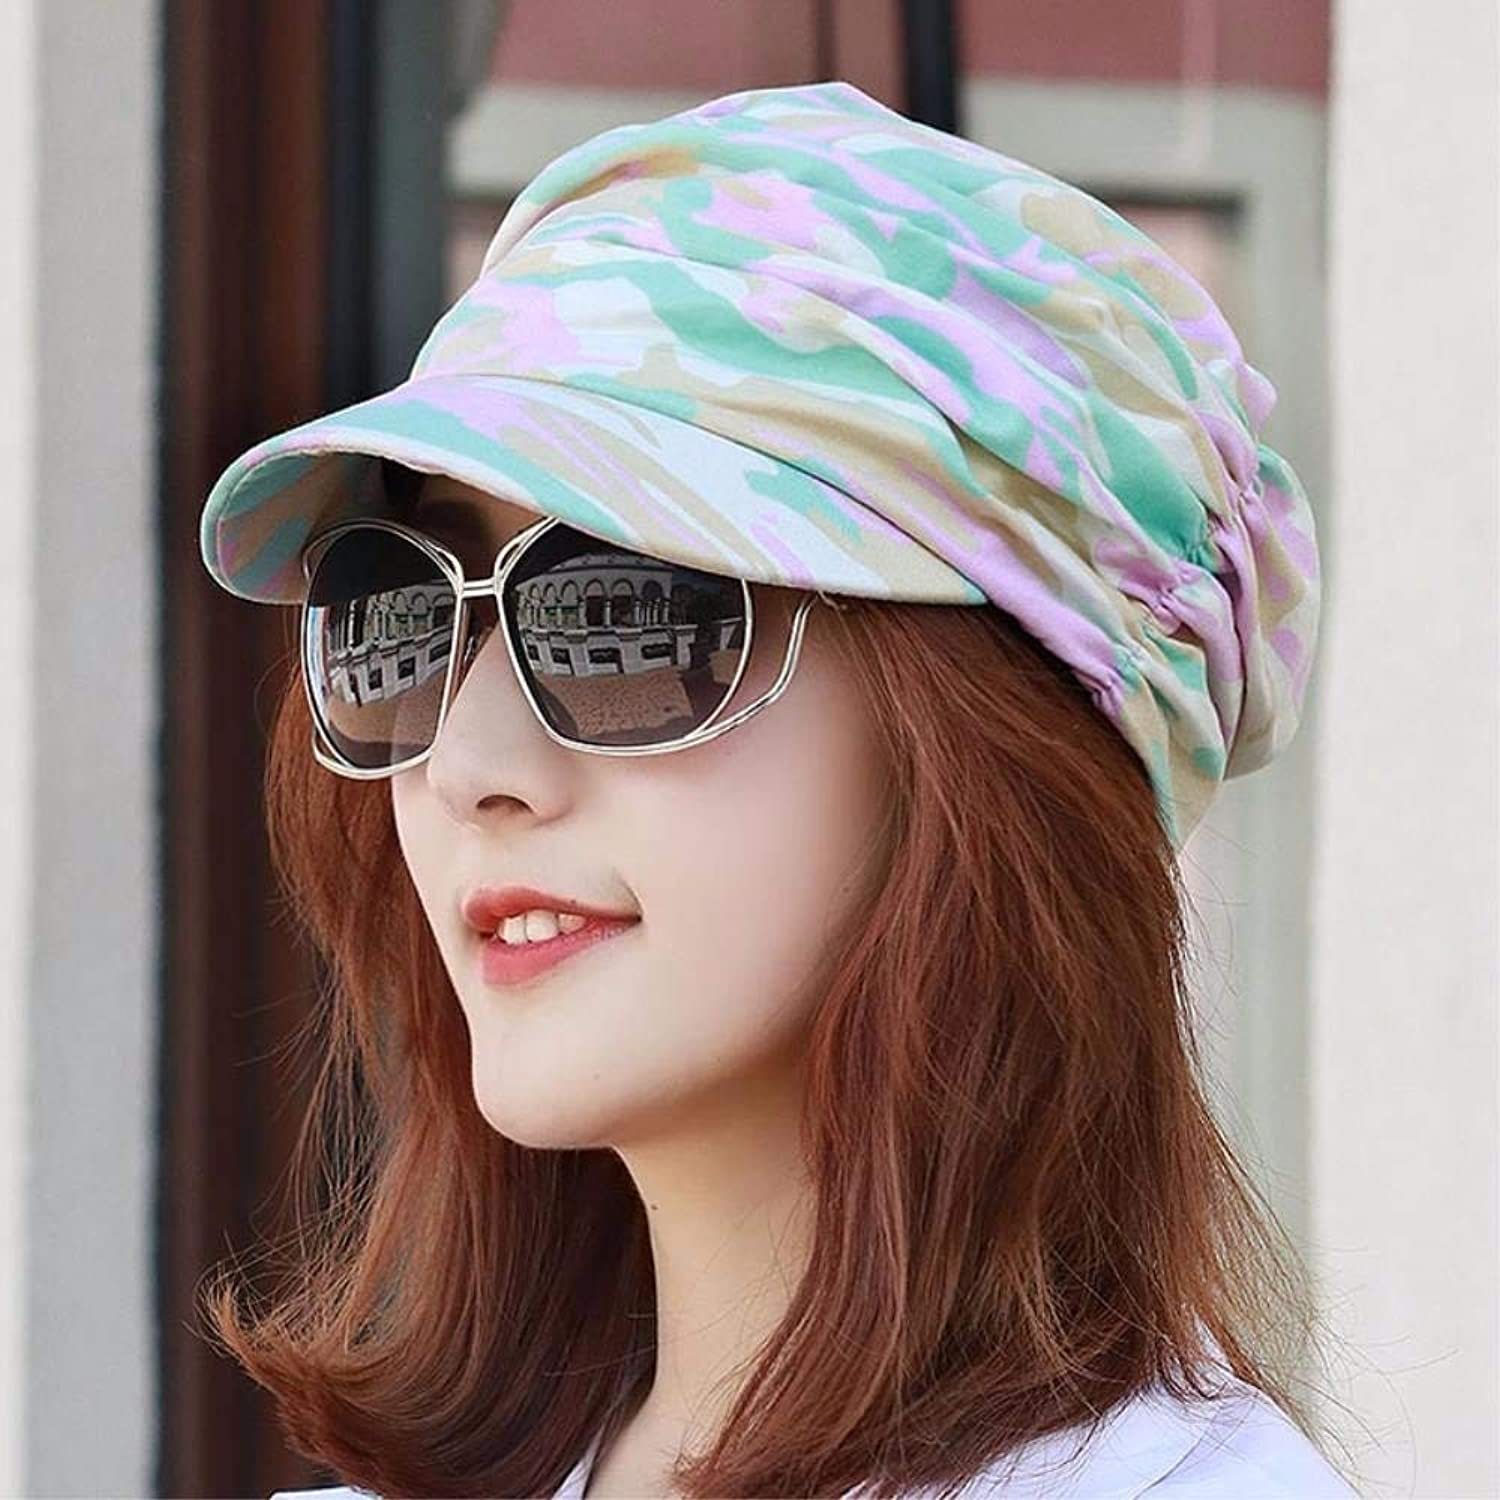 Chuiqingnet Hat female autumn breathable camouflage cap outdoor color Fashion Cap wrinkled skin cap flat top hat Beach